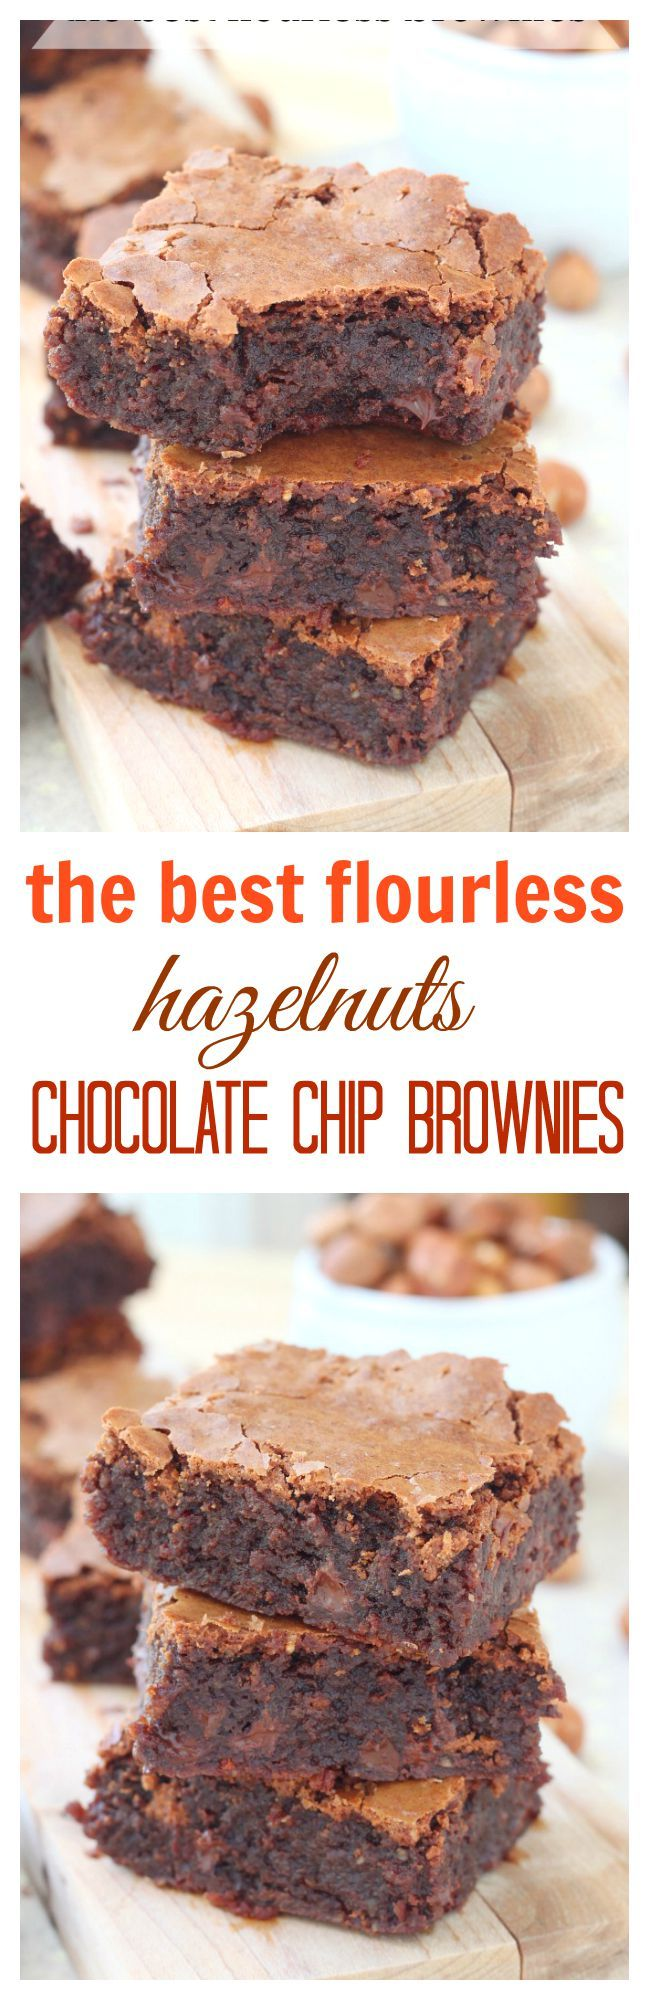 So rich and fudgy, these hazelnut chocolate chip brownies have an intensely chocolate interior and cracked tops. One bite and you'll fall in love with these flourless brownies over and over again.: